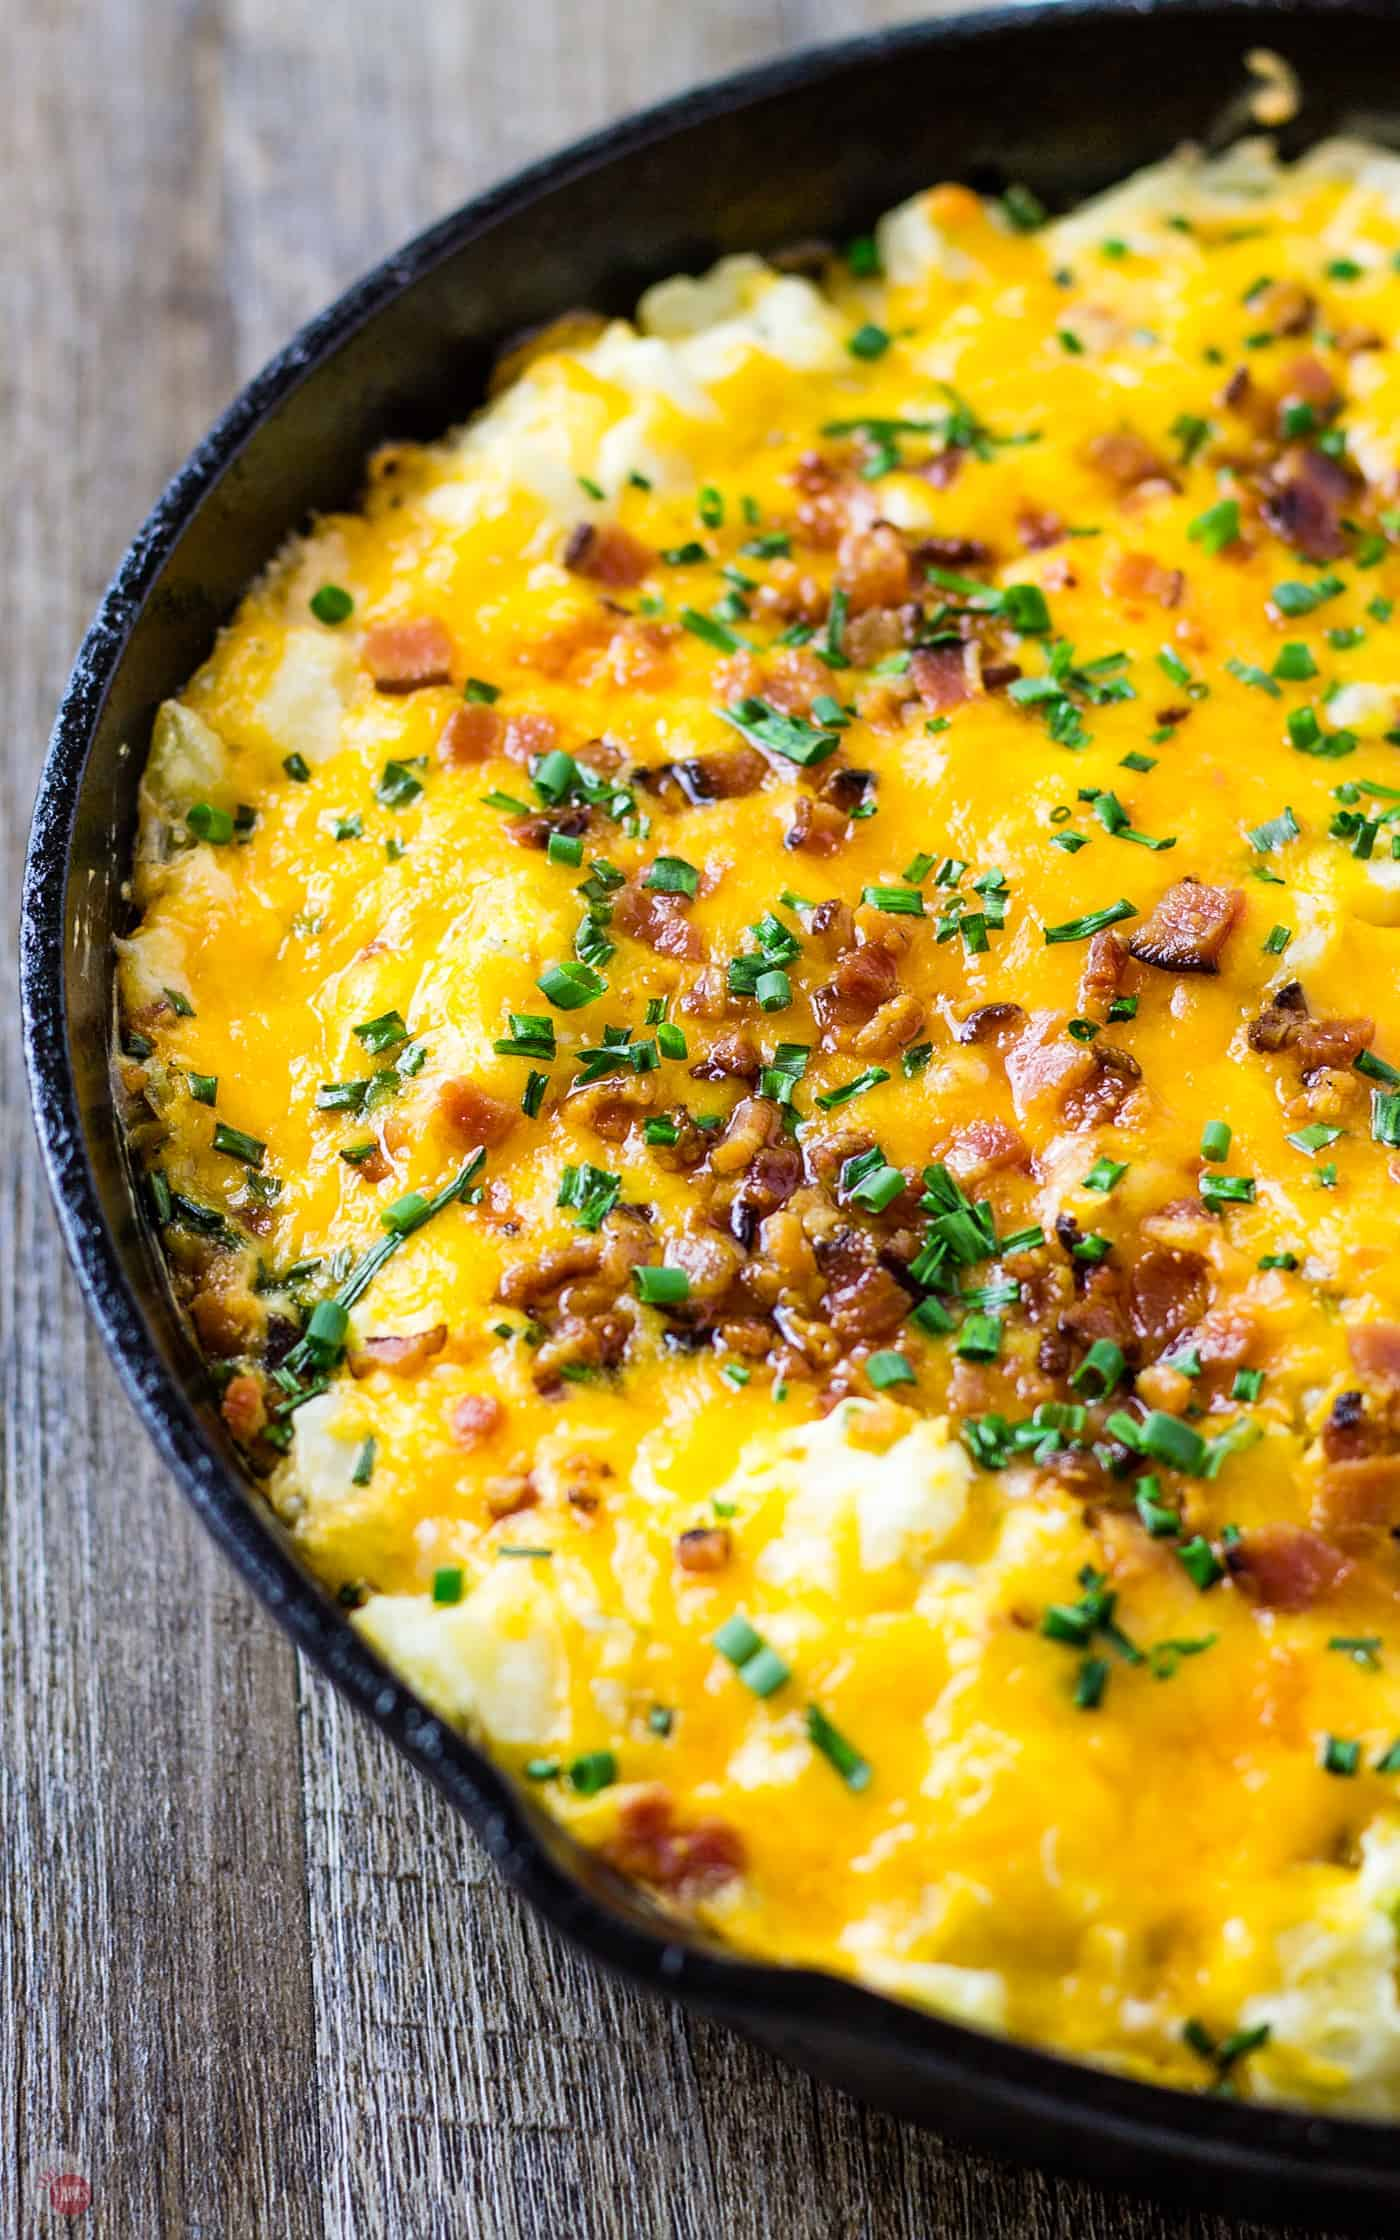 Loaded Potato Skin Dip all together in a skillet dip | Take Two Tapas | #LoadedPotatoSkins #PotatoSkins #SkilletDip #Tailgating #Bacon #Potatoes #Cheese